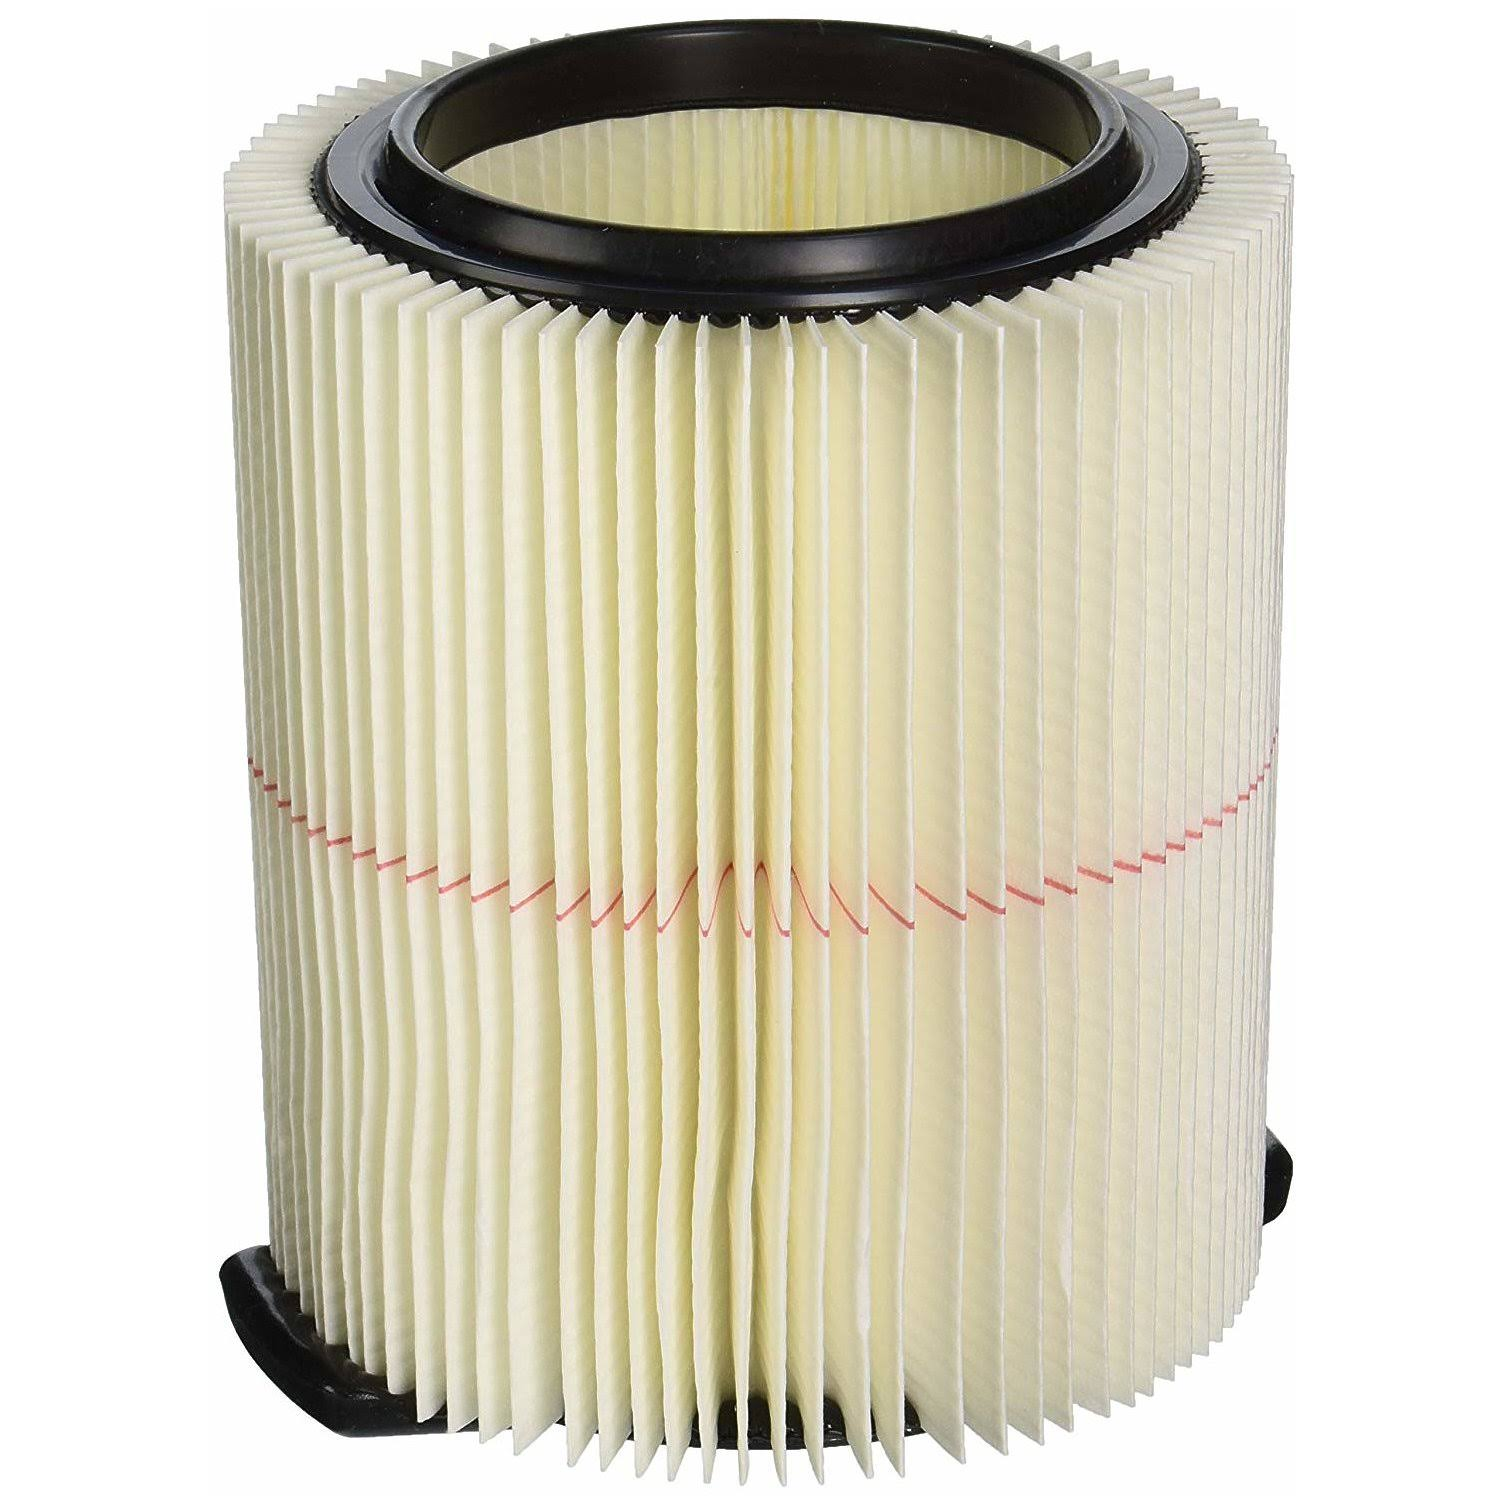 Craftsman 9-38754 Wet and Dry Vacuum Filter - Red Stripe, 5gal